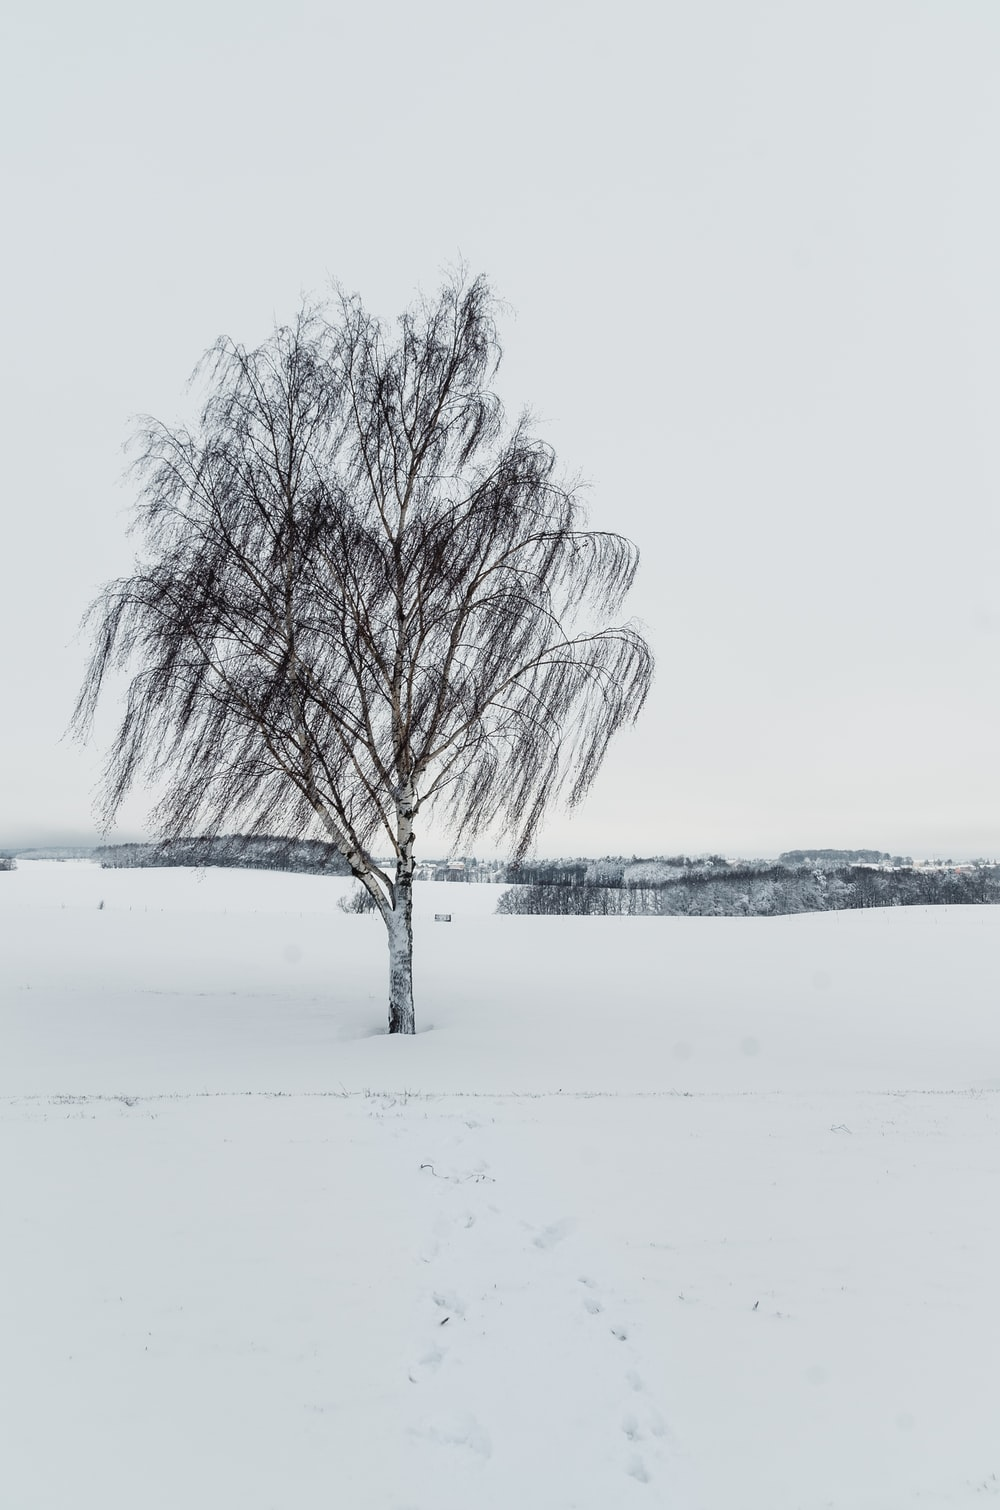 wind blowing on tree on snow filed during daytime